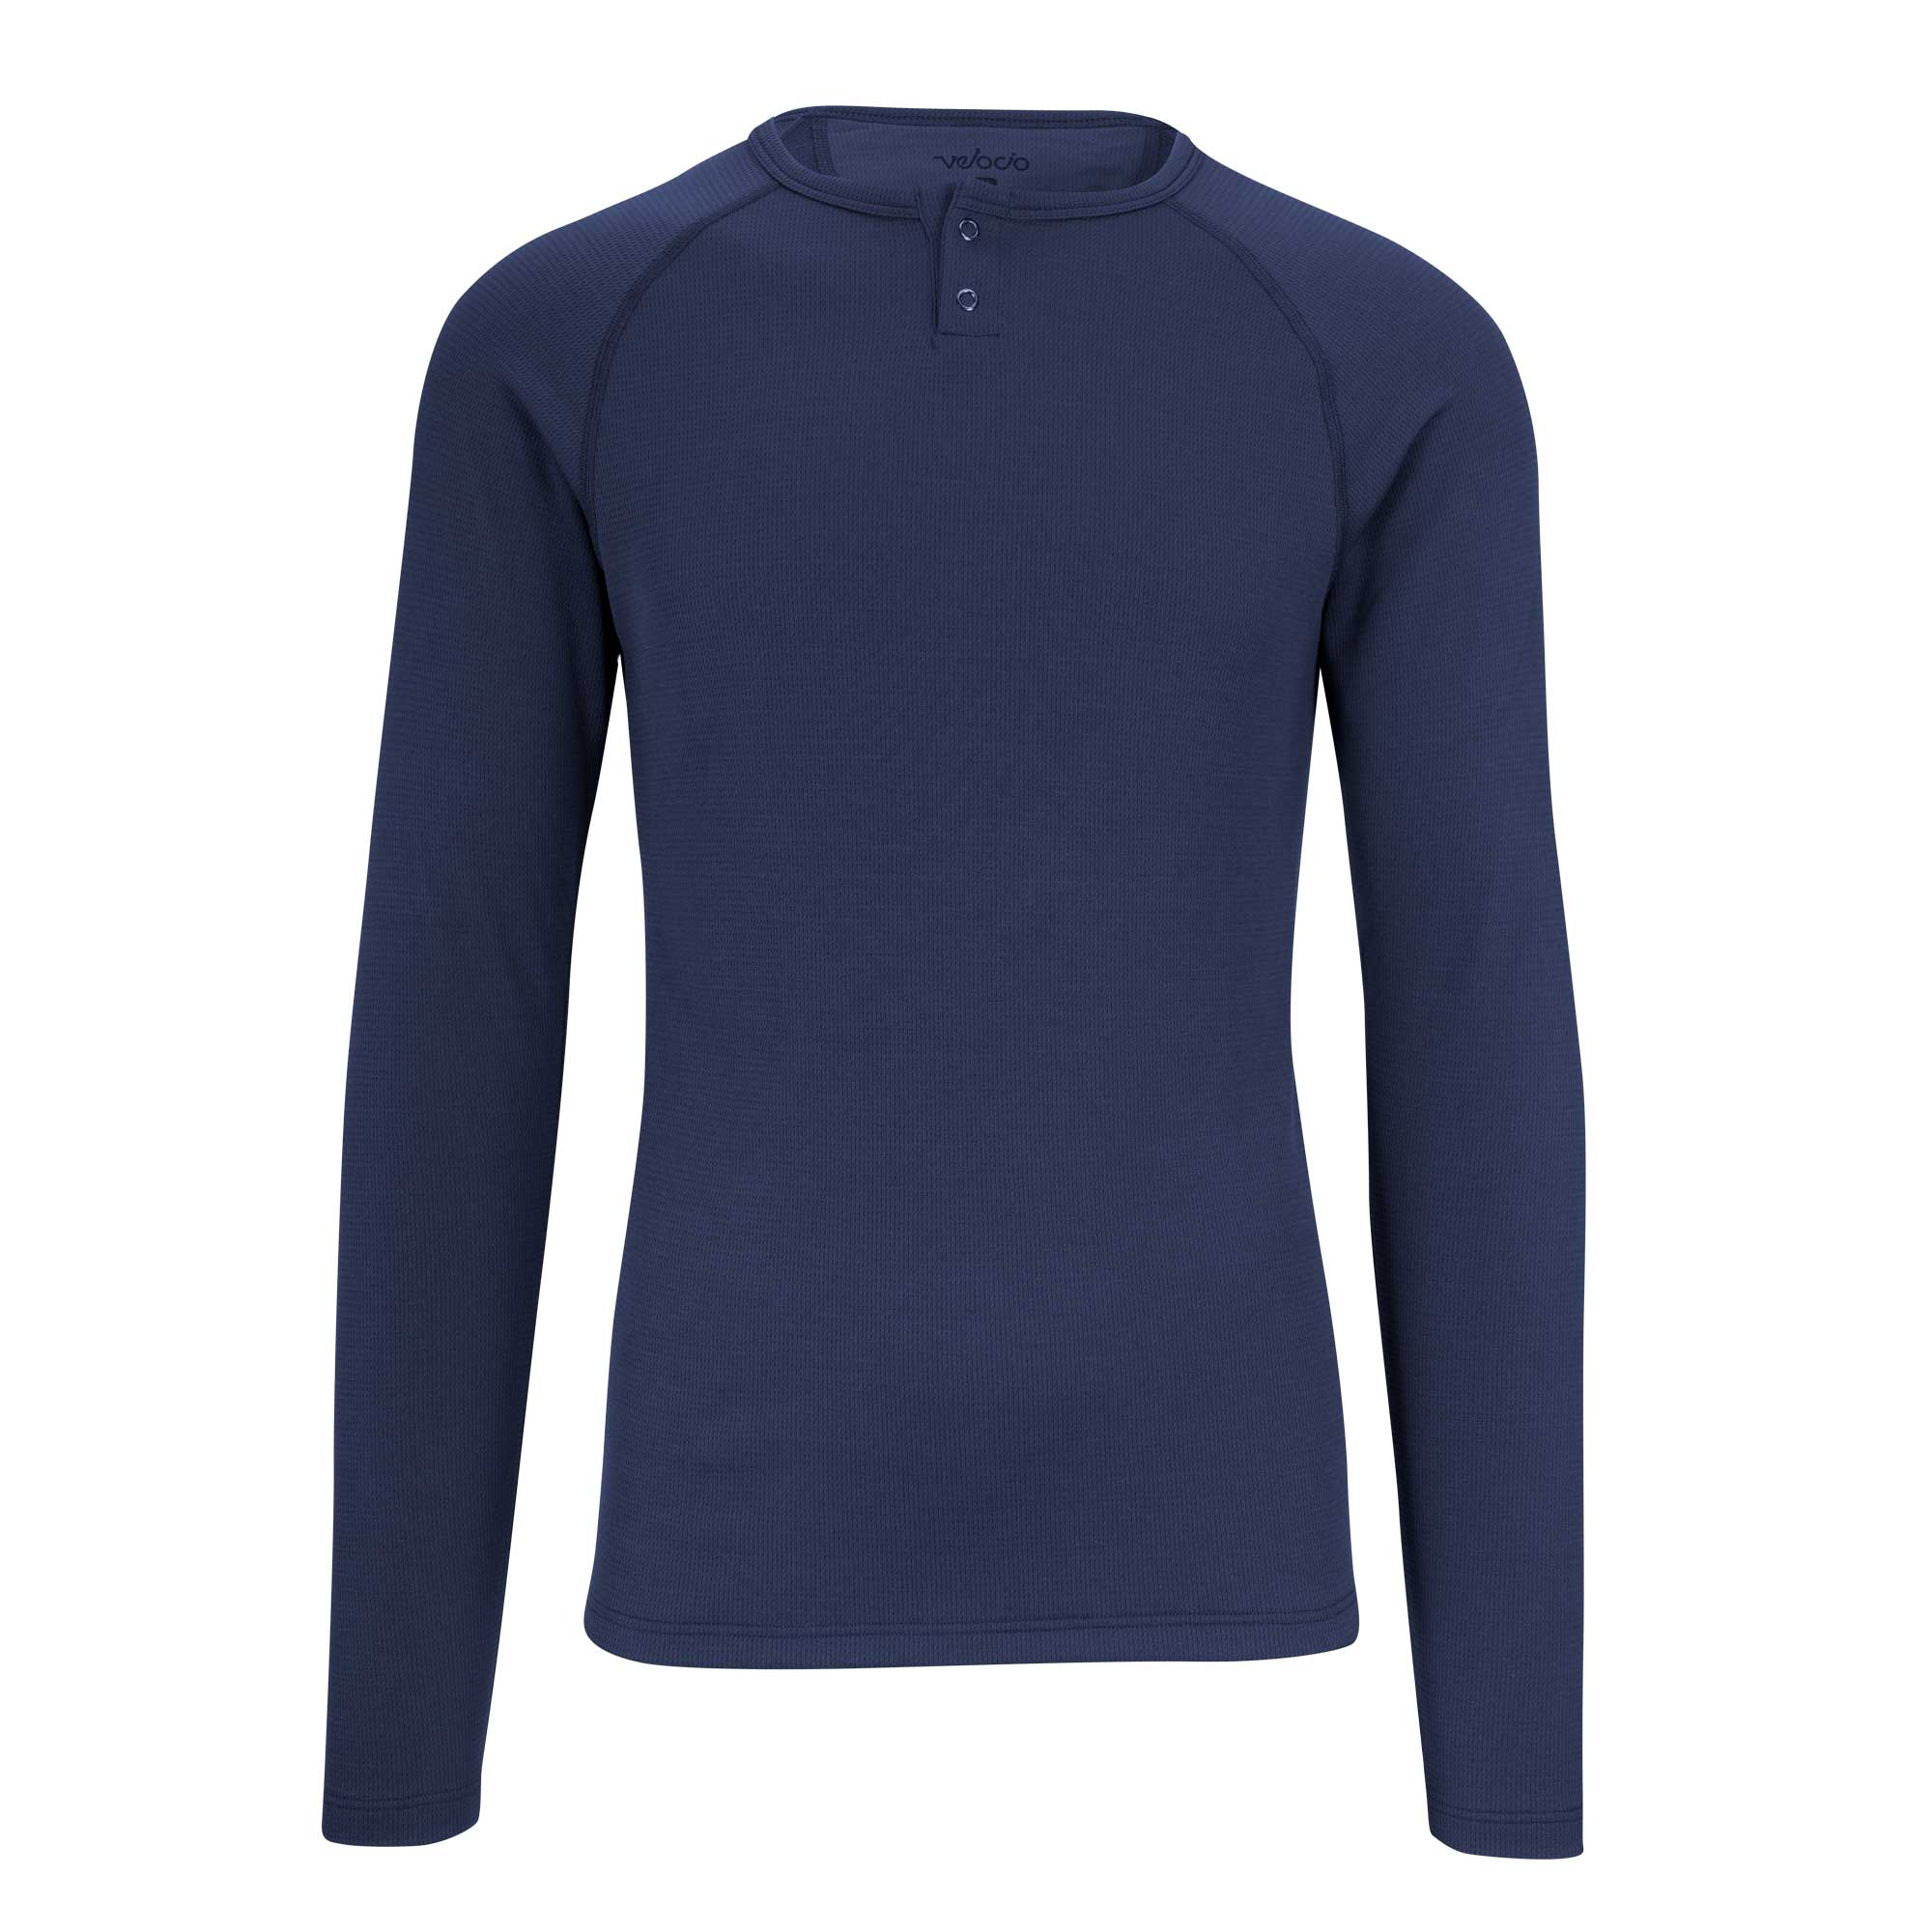 Men's Merino 160 LS Base Layer